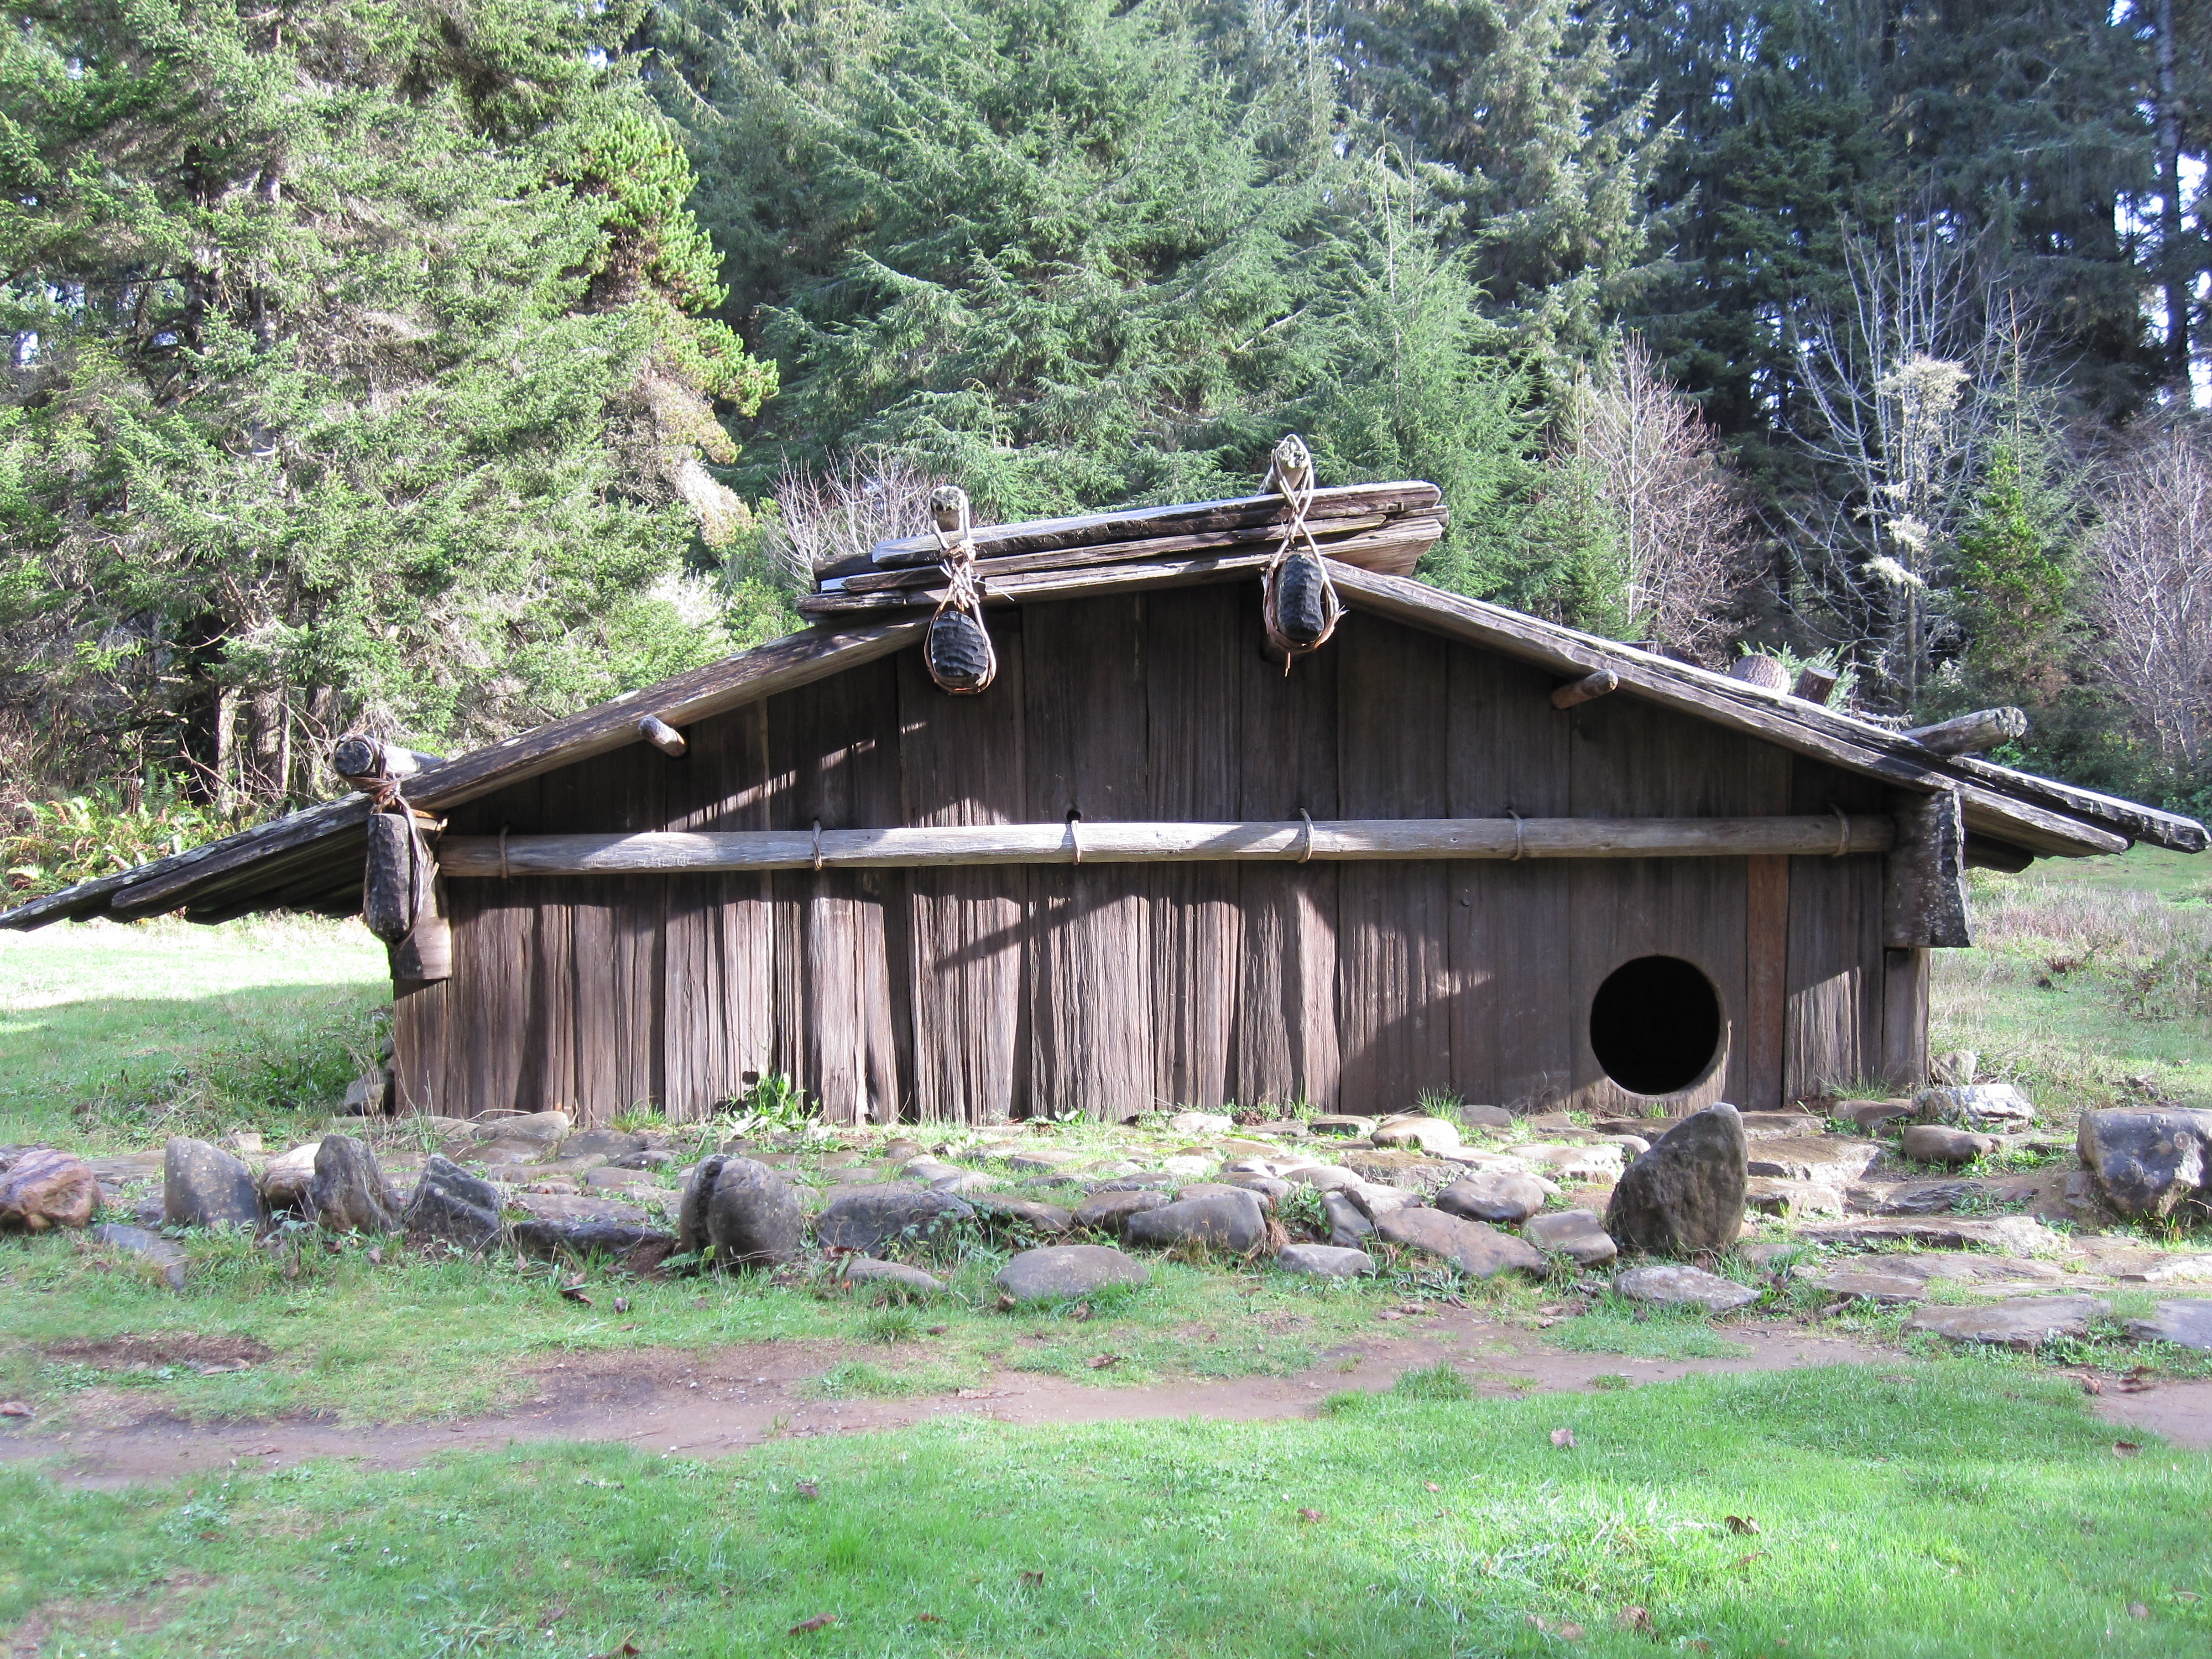 Indian Plank House http://commons.wikimedia.org/wiki/File:Yurok-Plank-house.jpg